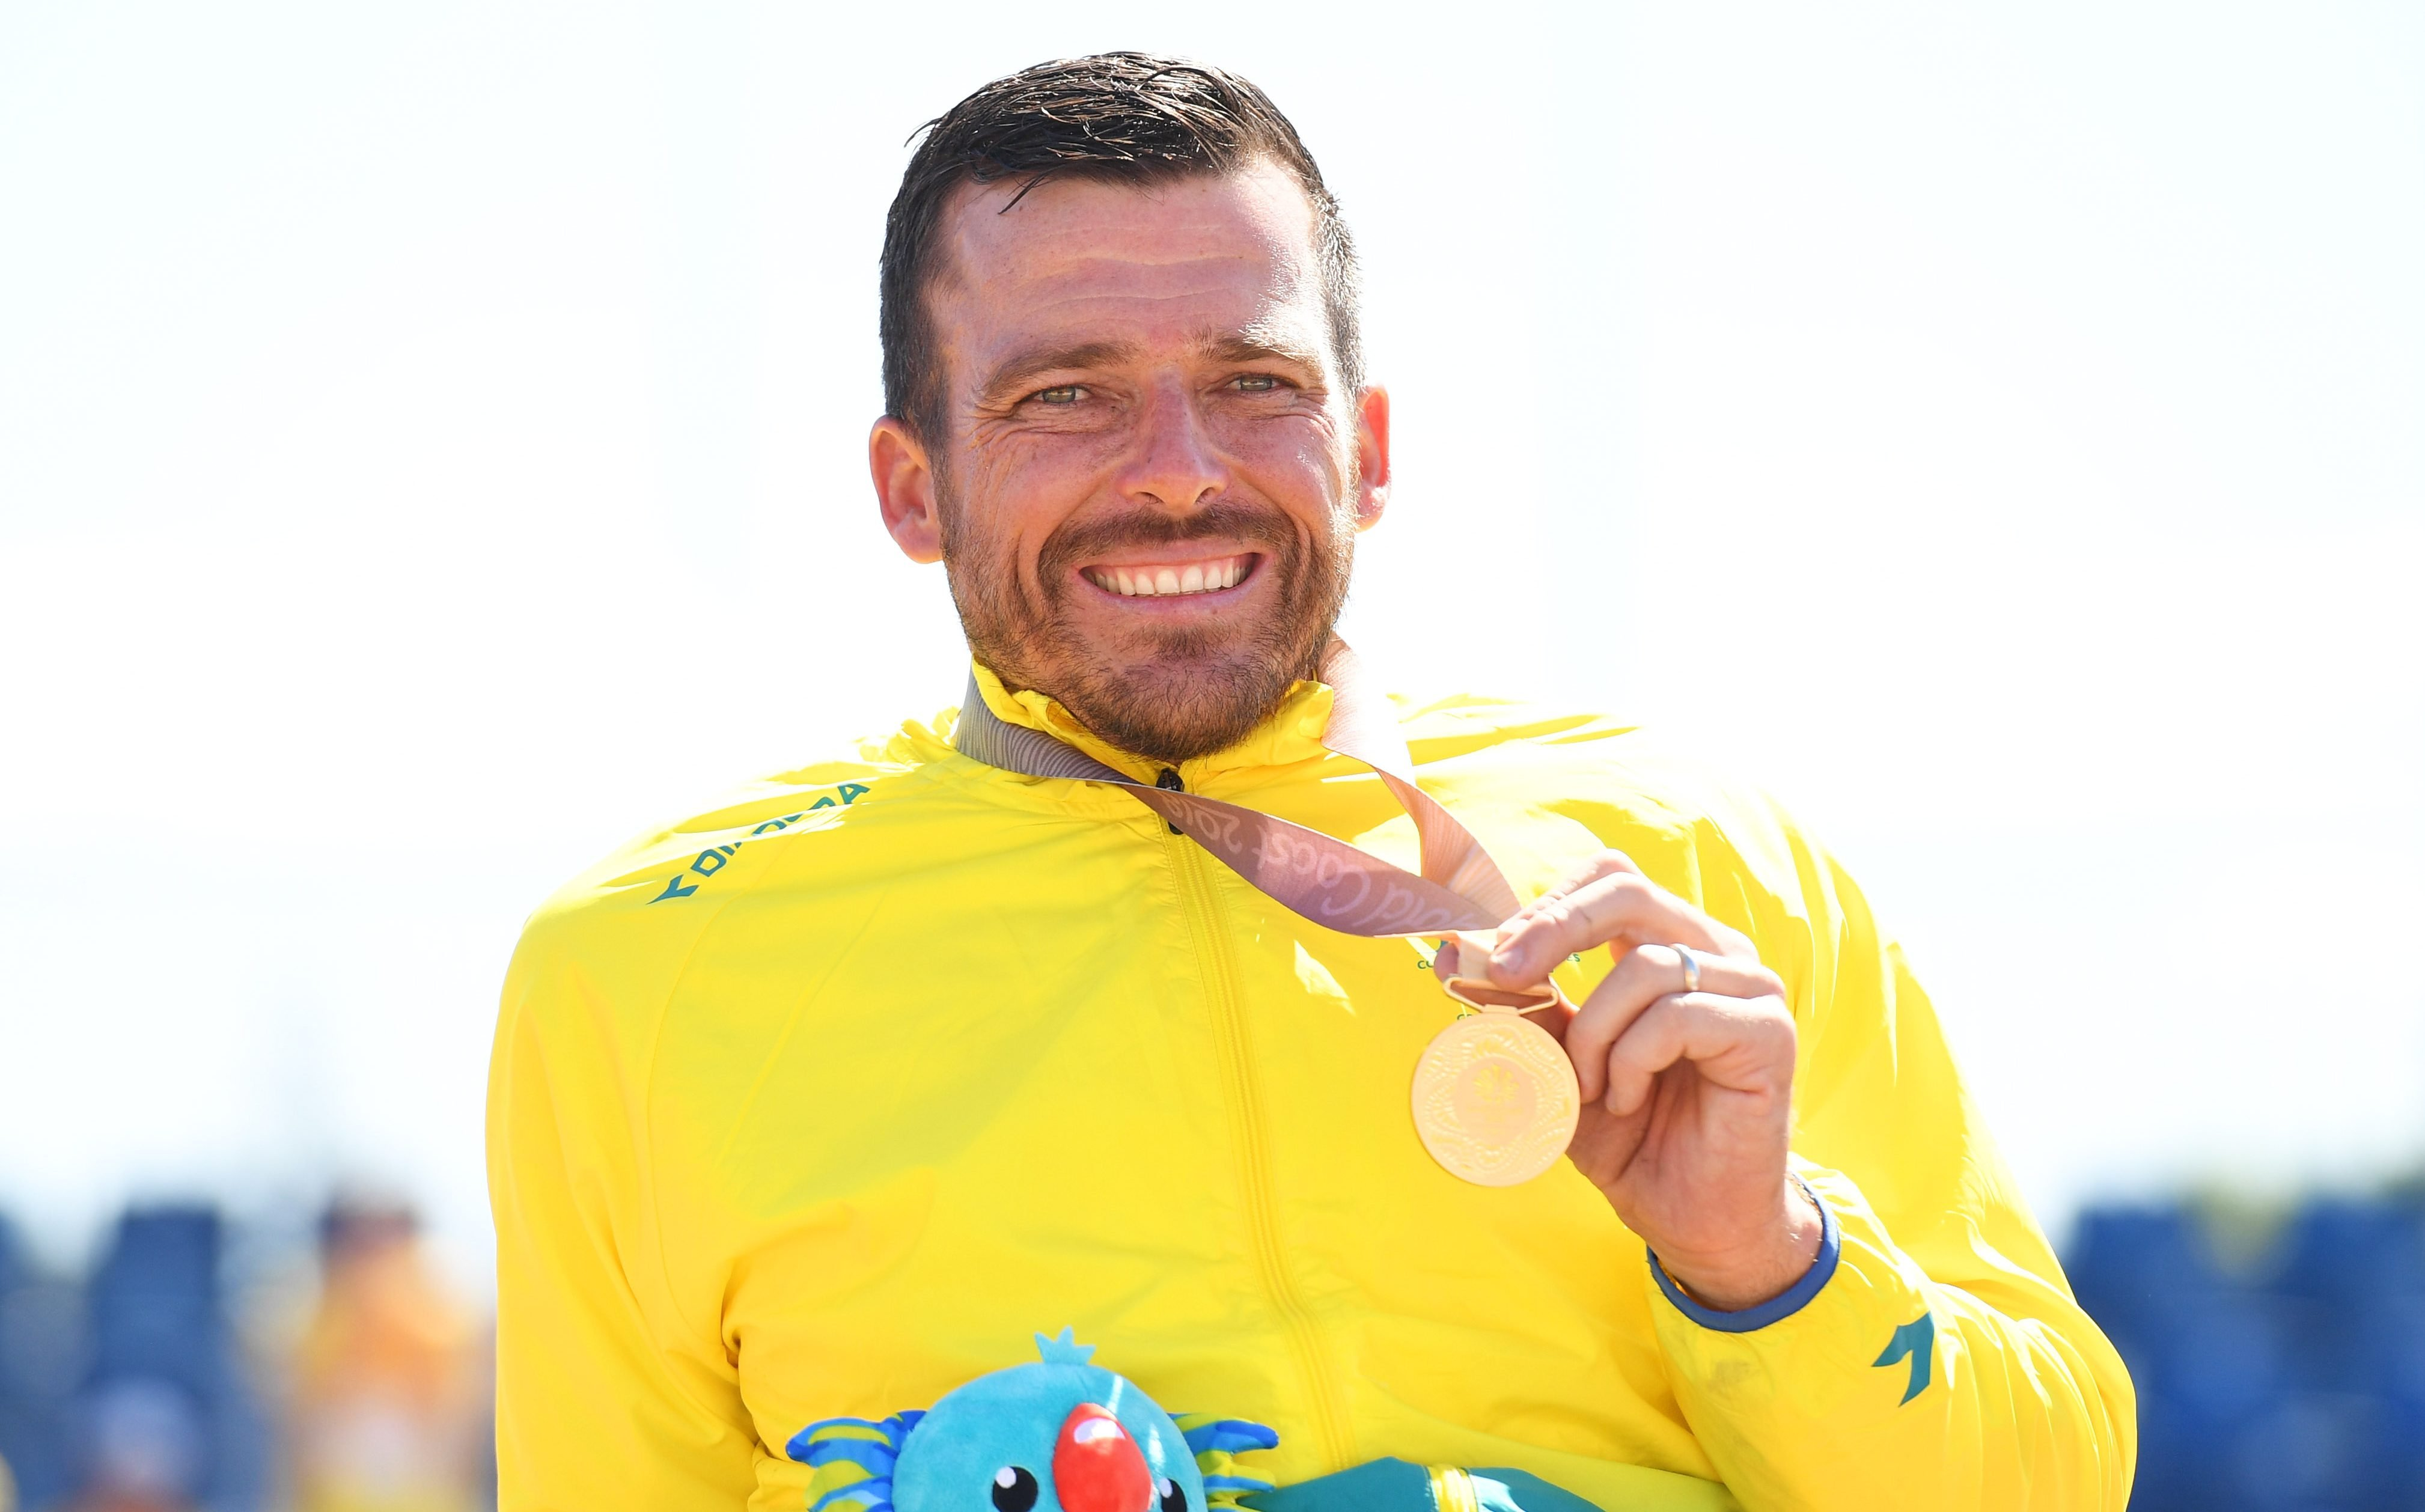 Fearnley makes history as Commonwealth Games flag-bearer